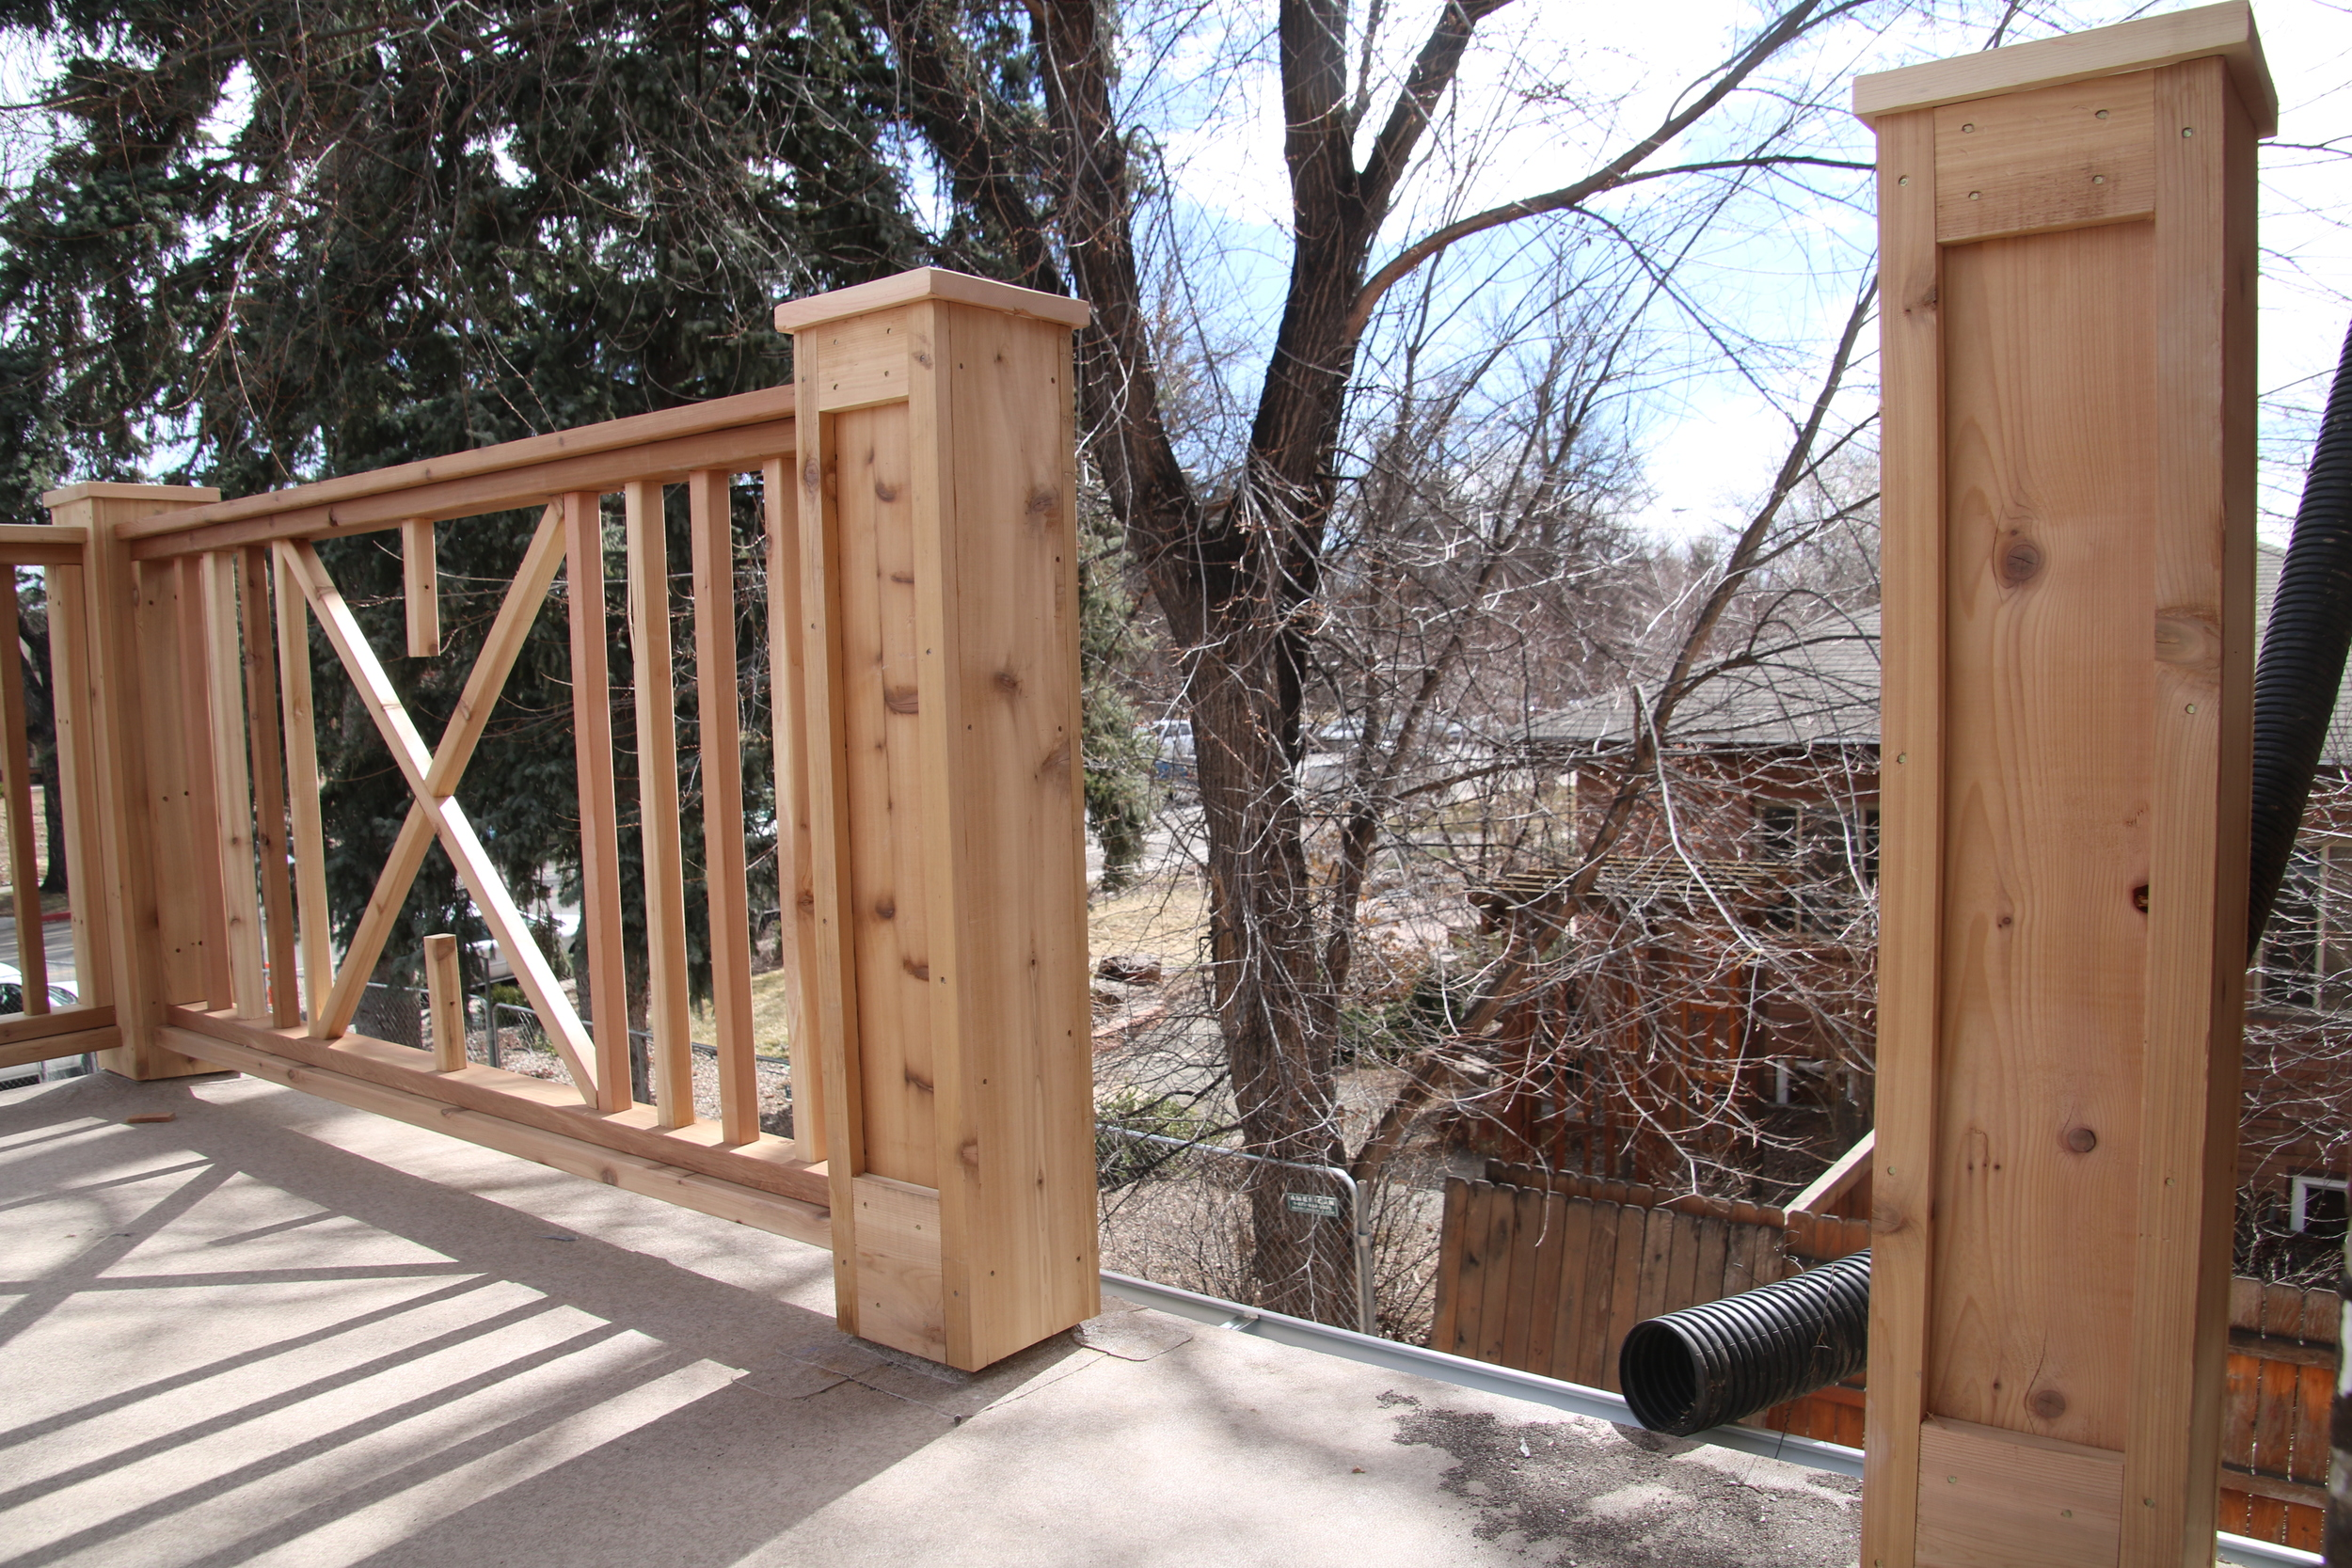 2016-03-01 opening trophy room deck for future stair.JPG